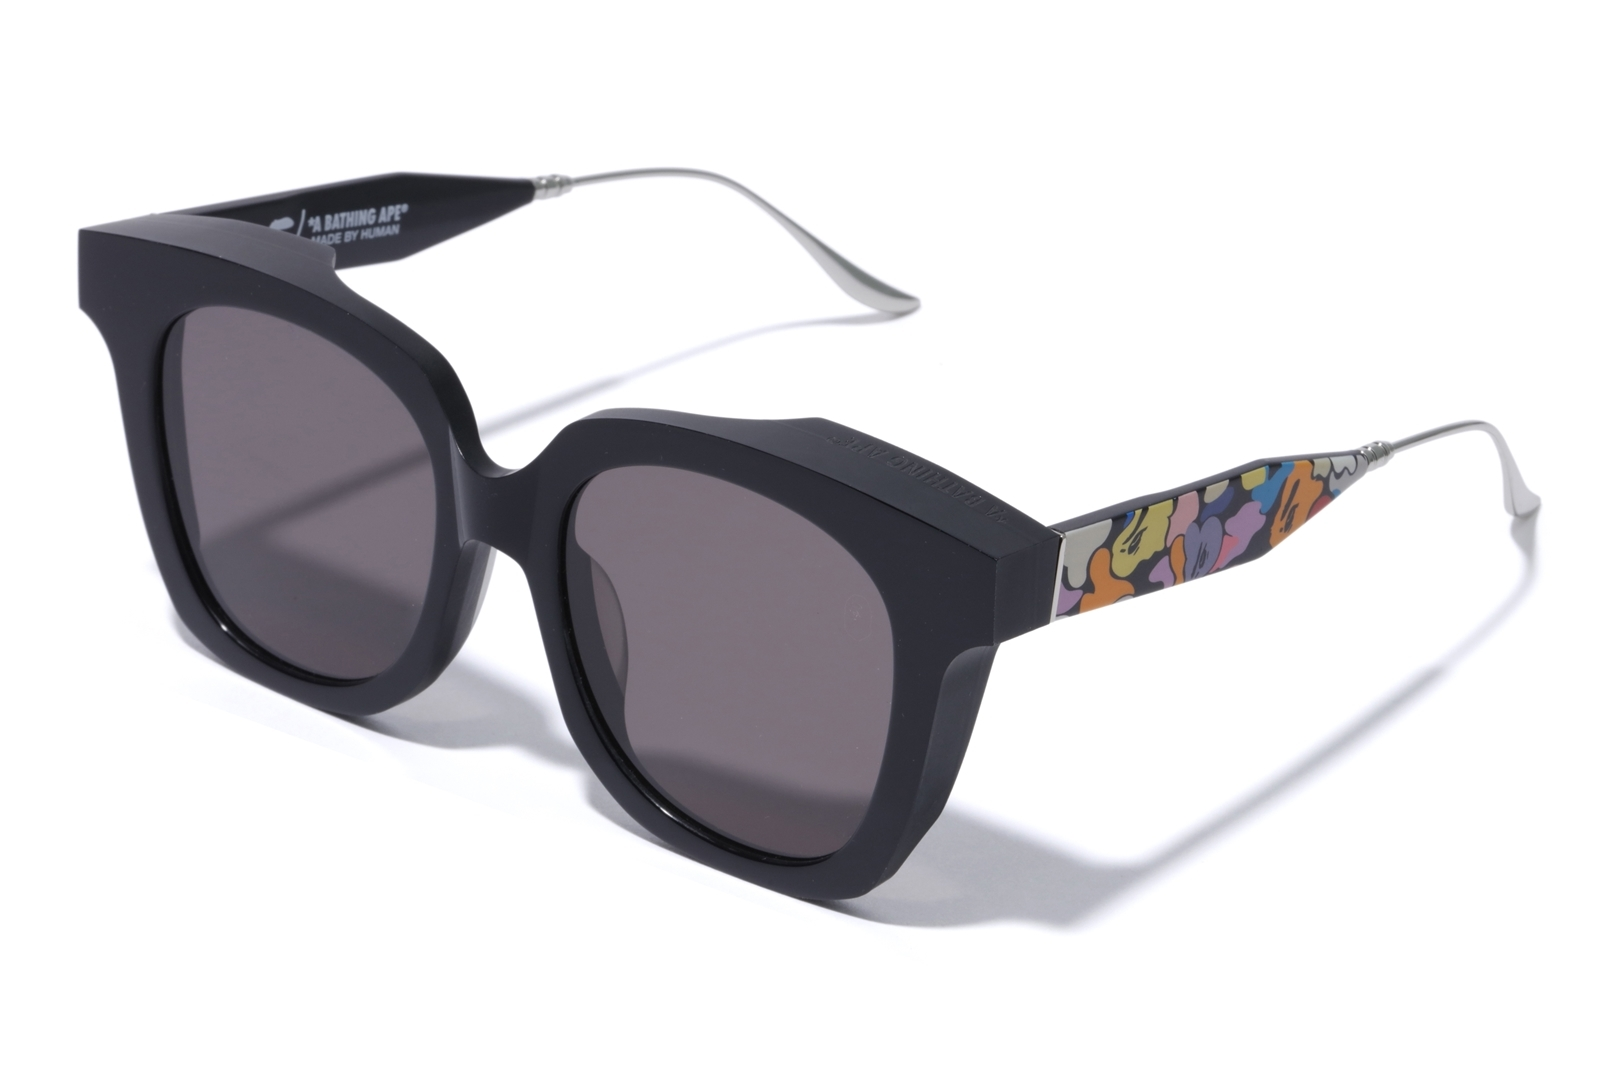 SUNGLASSES 3_a0174495_13354271.jpg